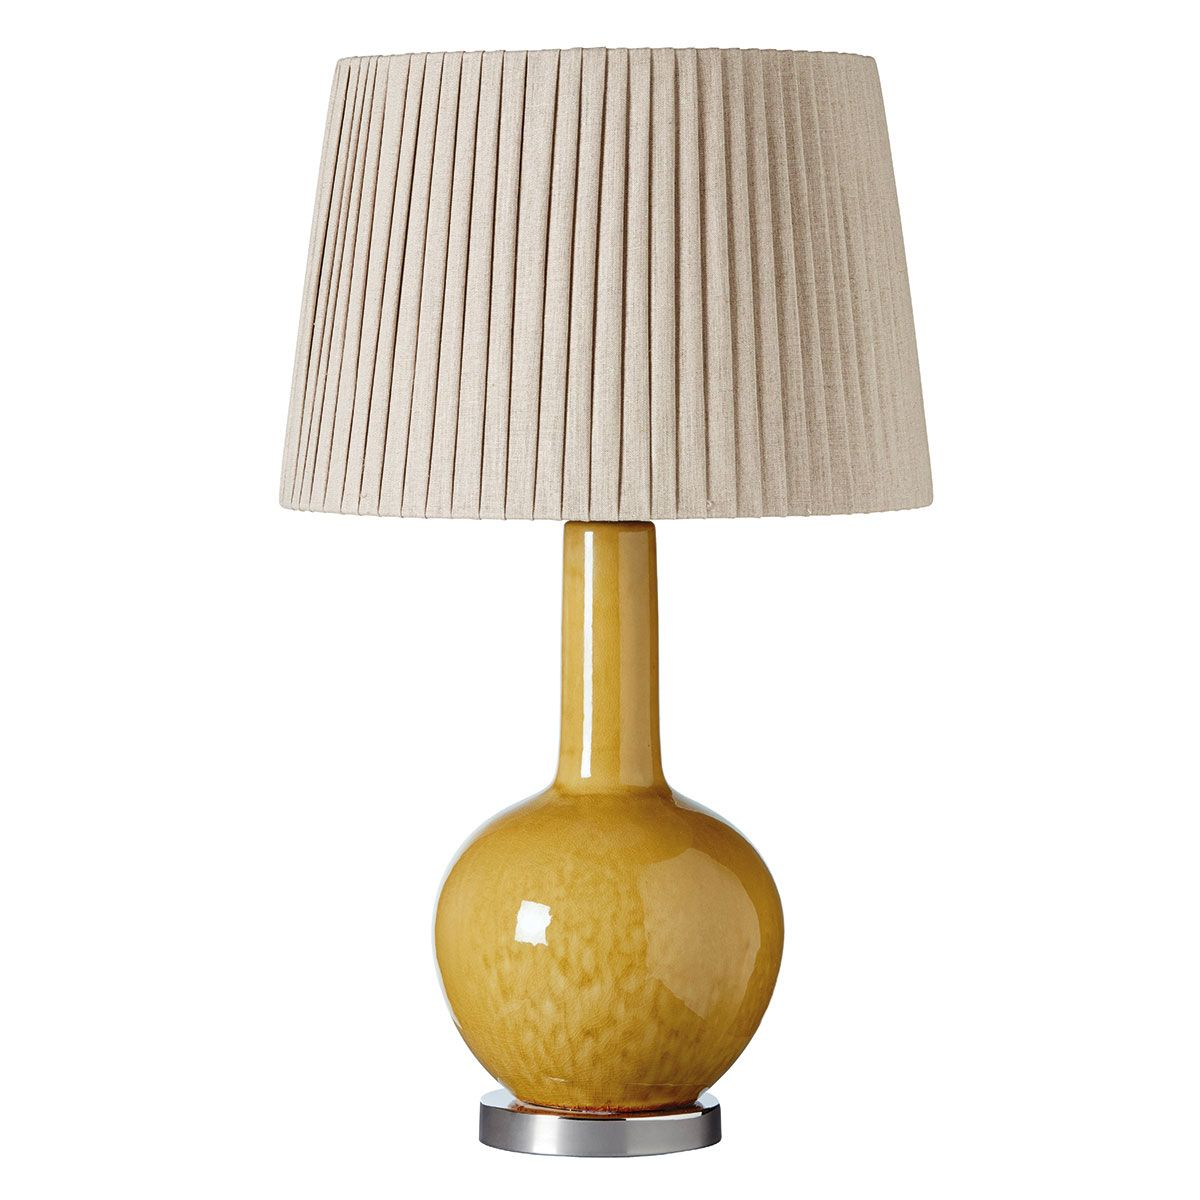 Grenadilla table lamp tables lamps and table lamps grenadilla table lamp oka aloadofball Images